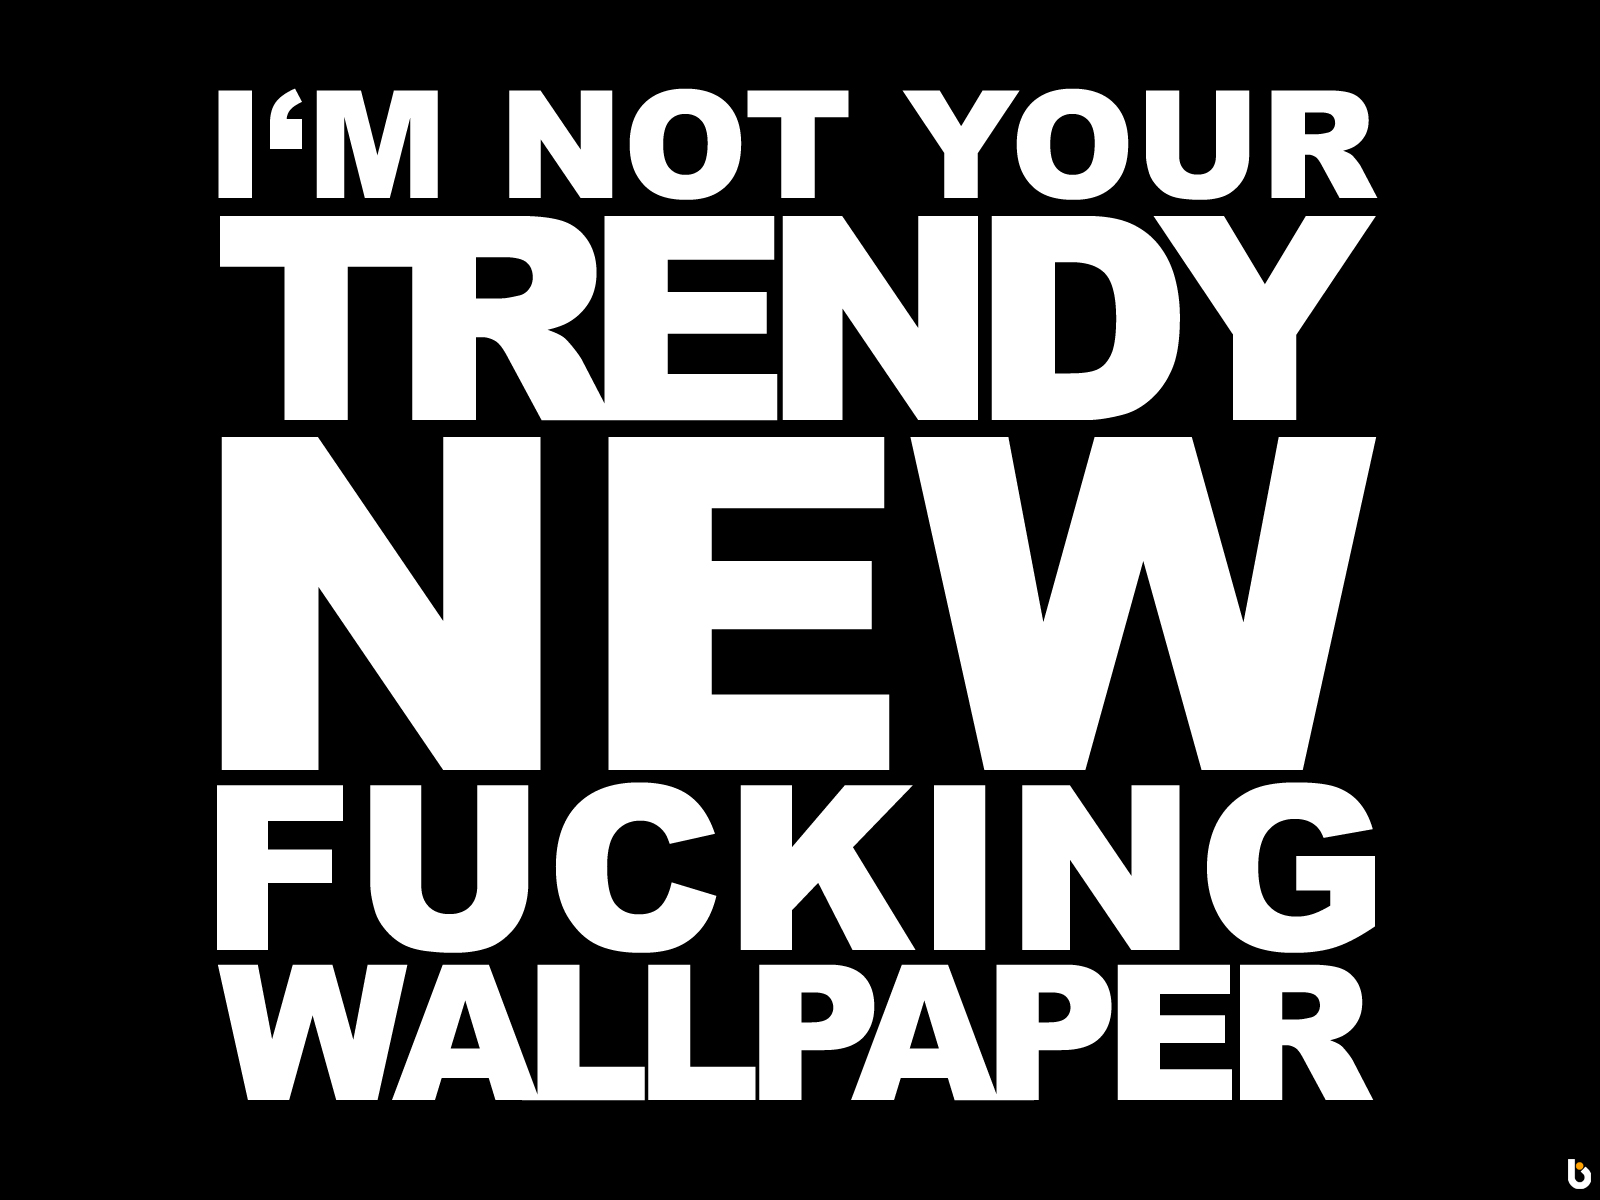 I hate wallpaper